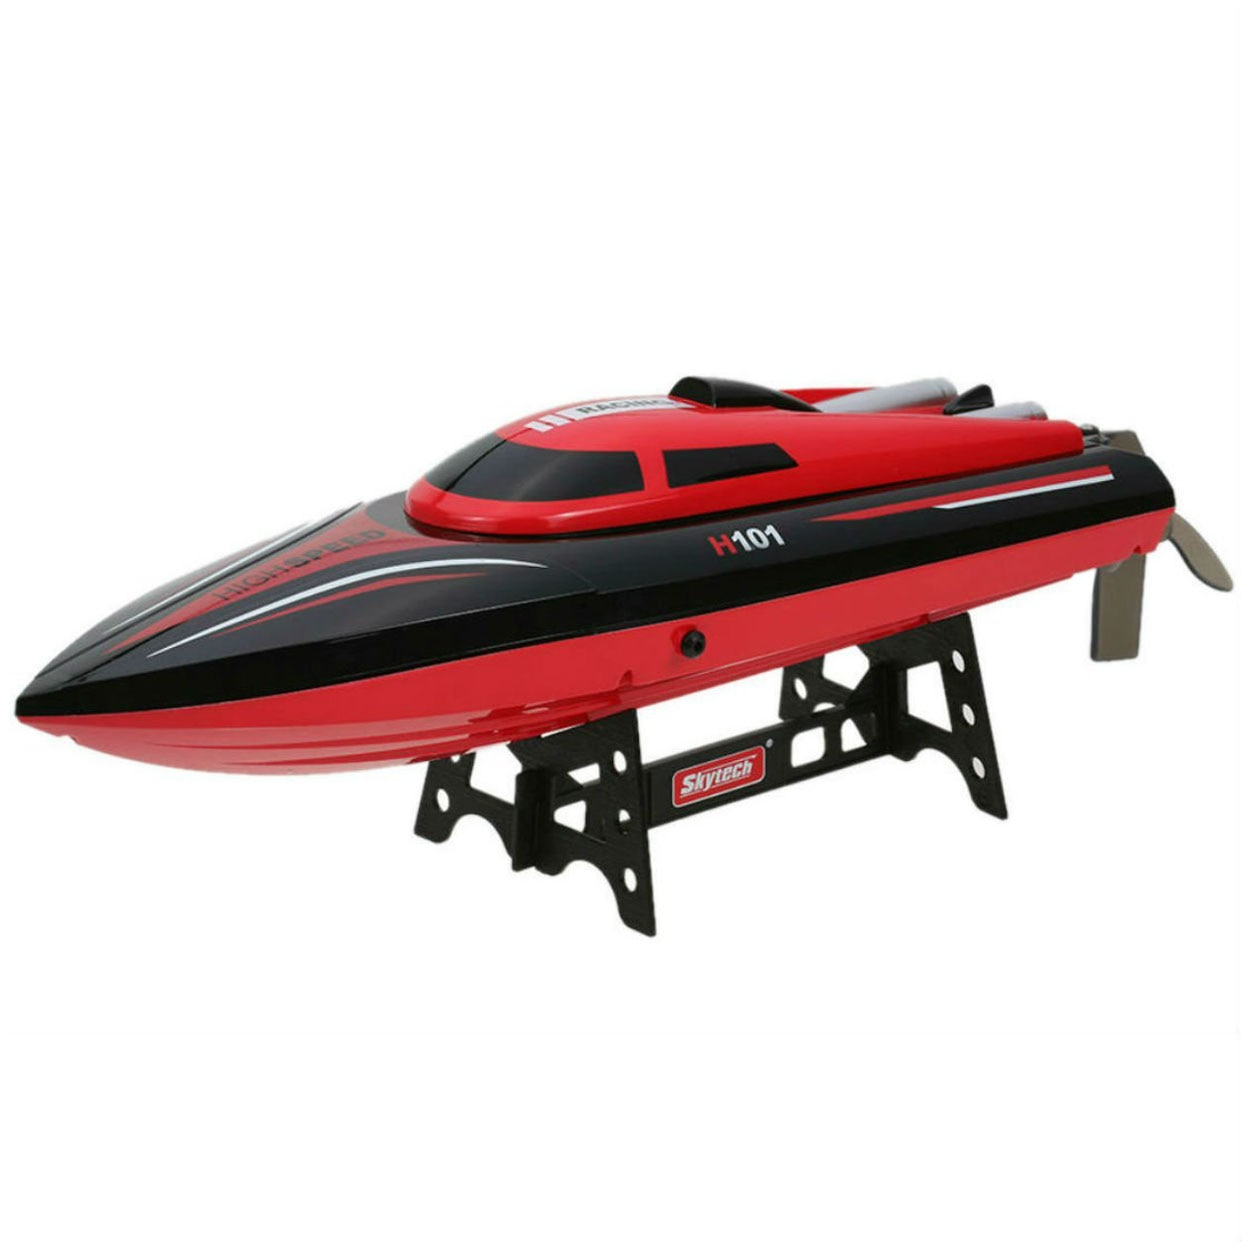 Newest Speedboat Outdoor H101 RC Boat 2.4G 30km/h High Speed Racing Remote Control Ship RC Steerable Boat For Boy Toys enlarge